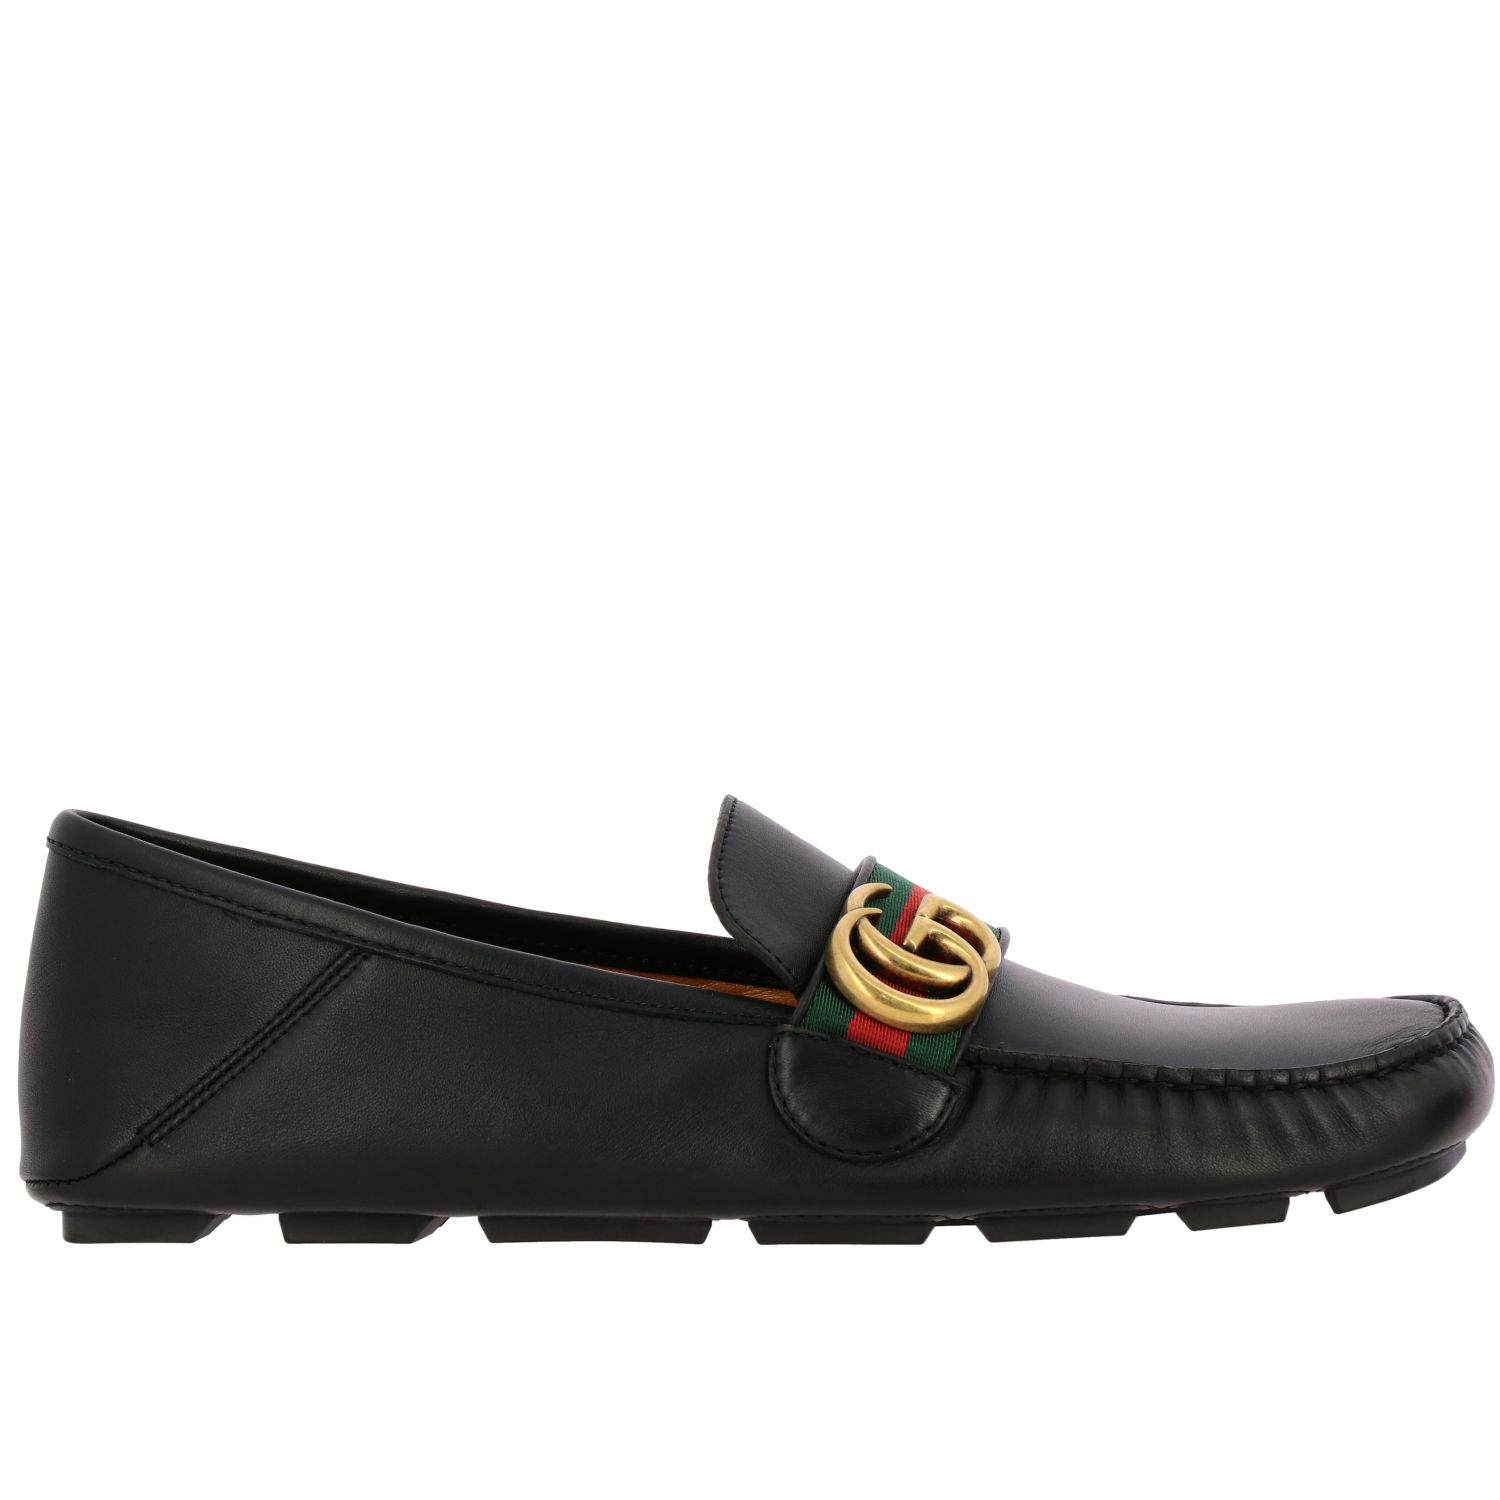 Gucci Noel driver moccasin in leather with Web buckle and GG Marmont monogram black 1